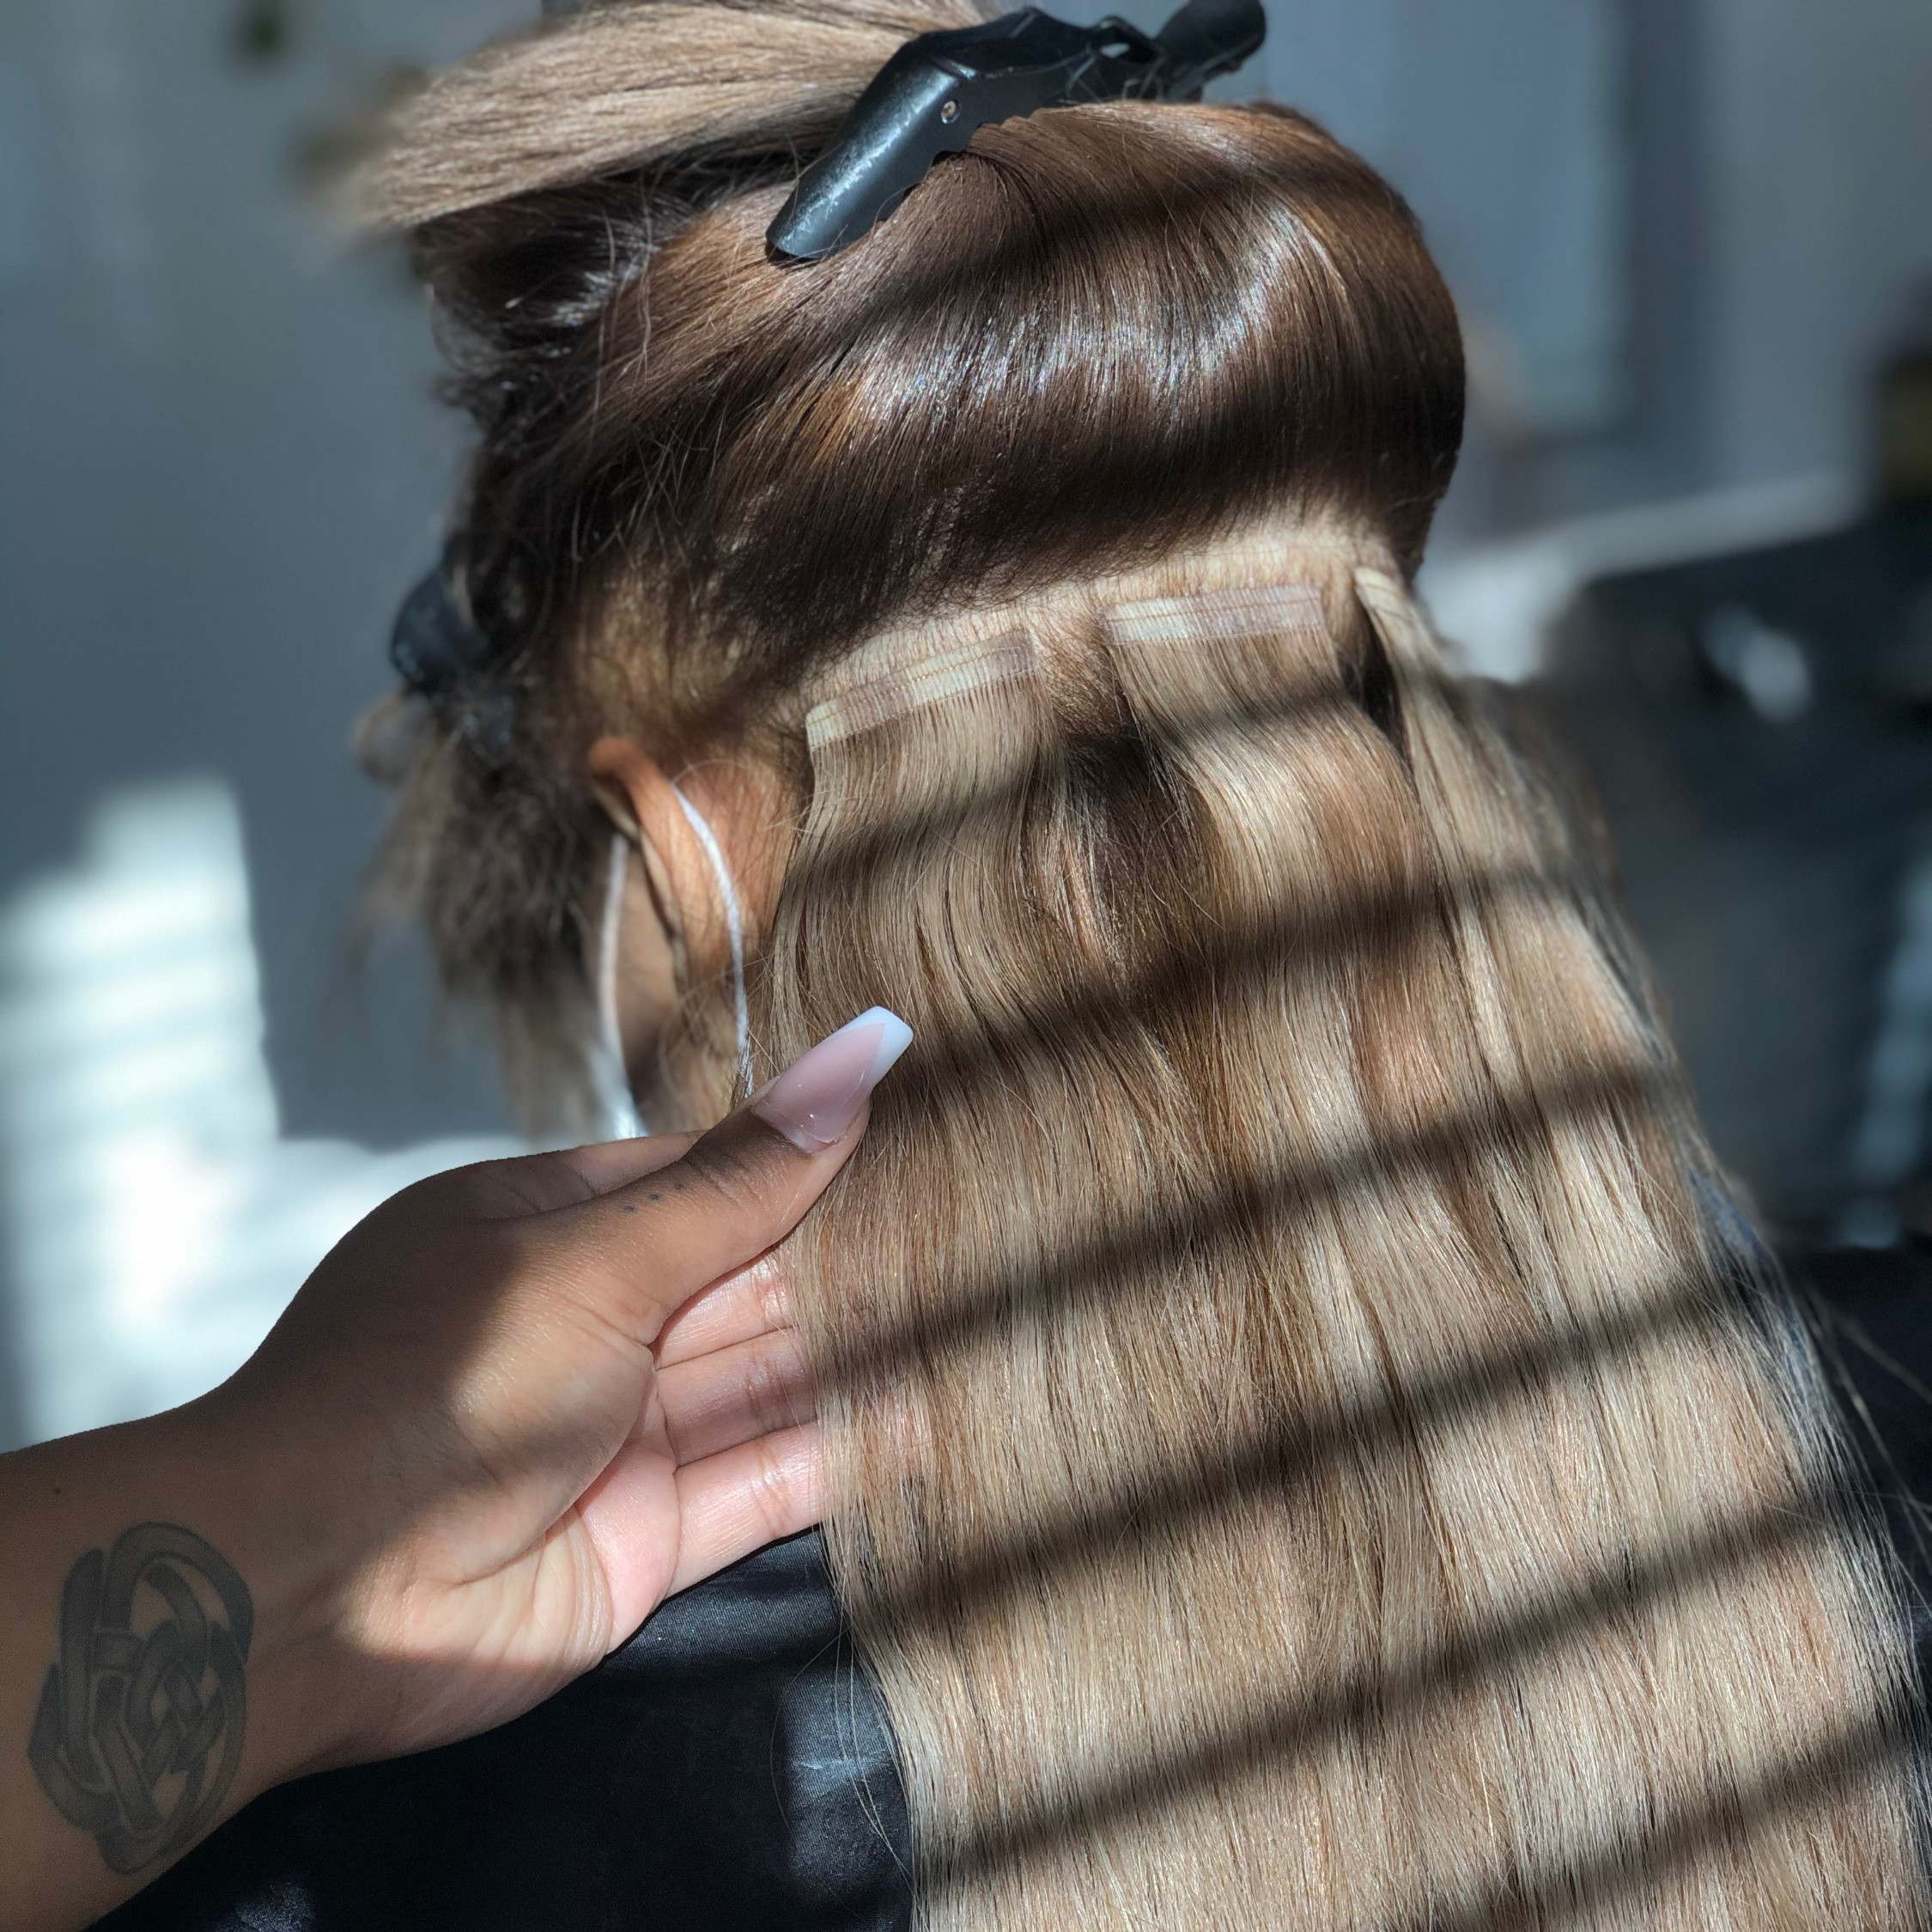 Tape-Extensions (Removal)